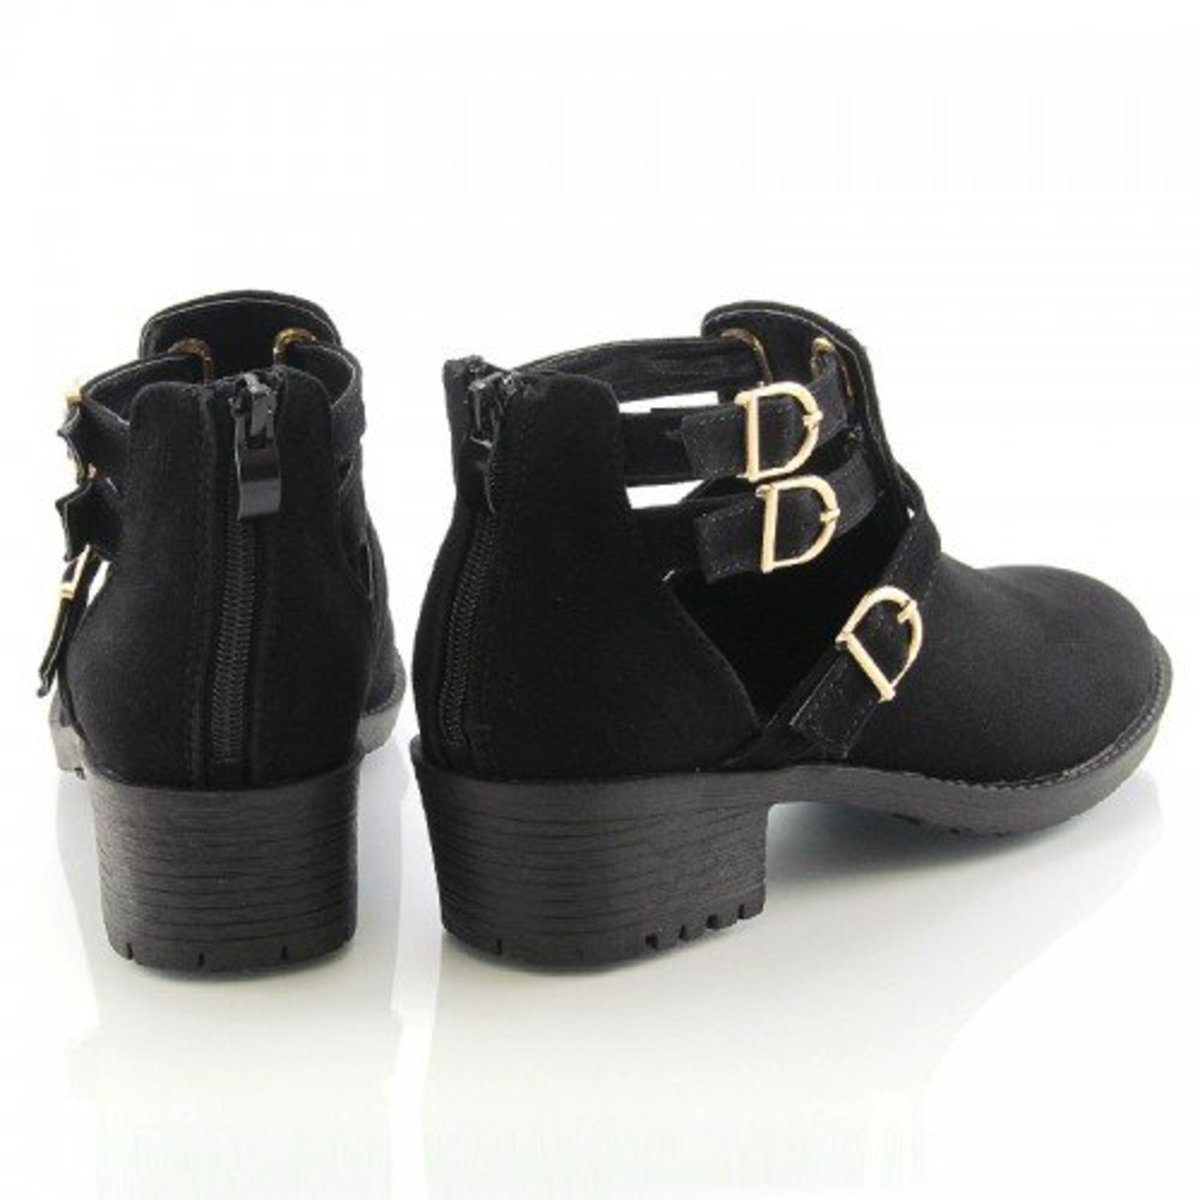 low suede block heel ankle boots with cutout design and zipper back -- style and comfort at its best